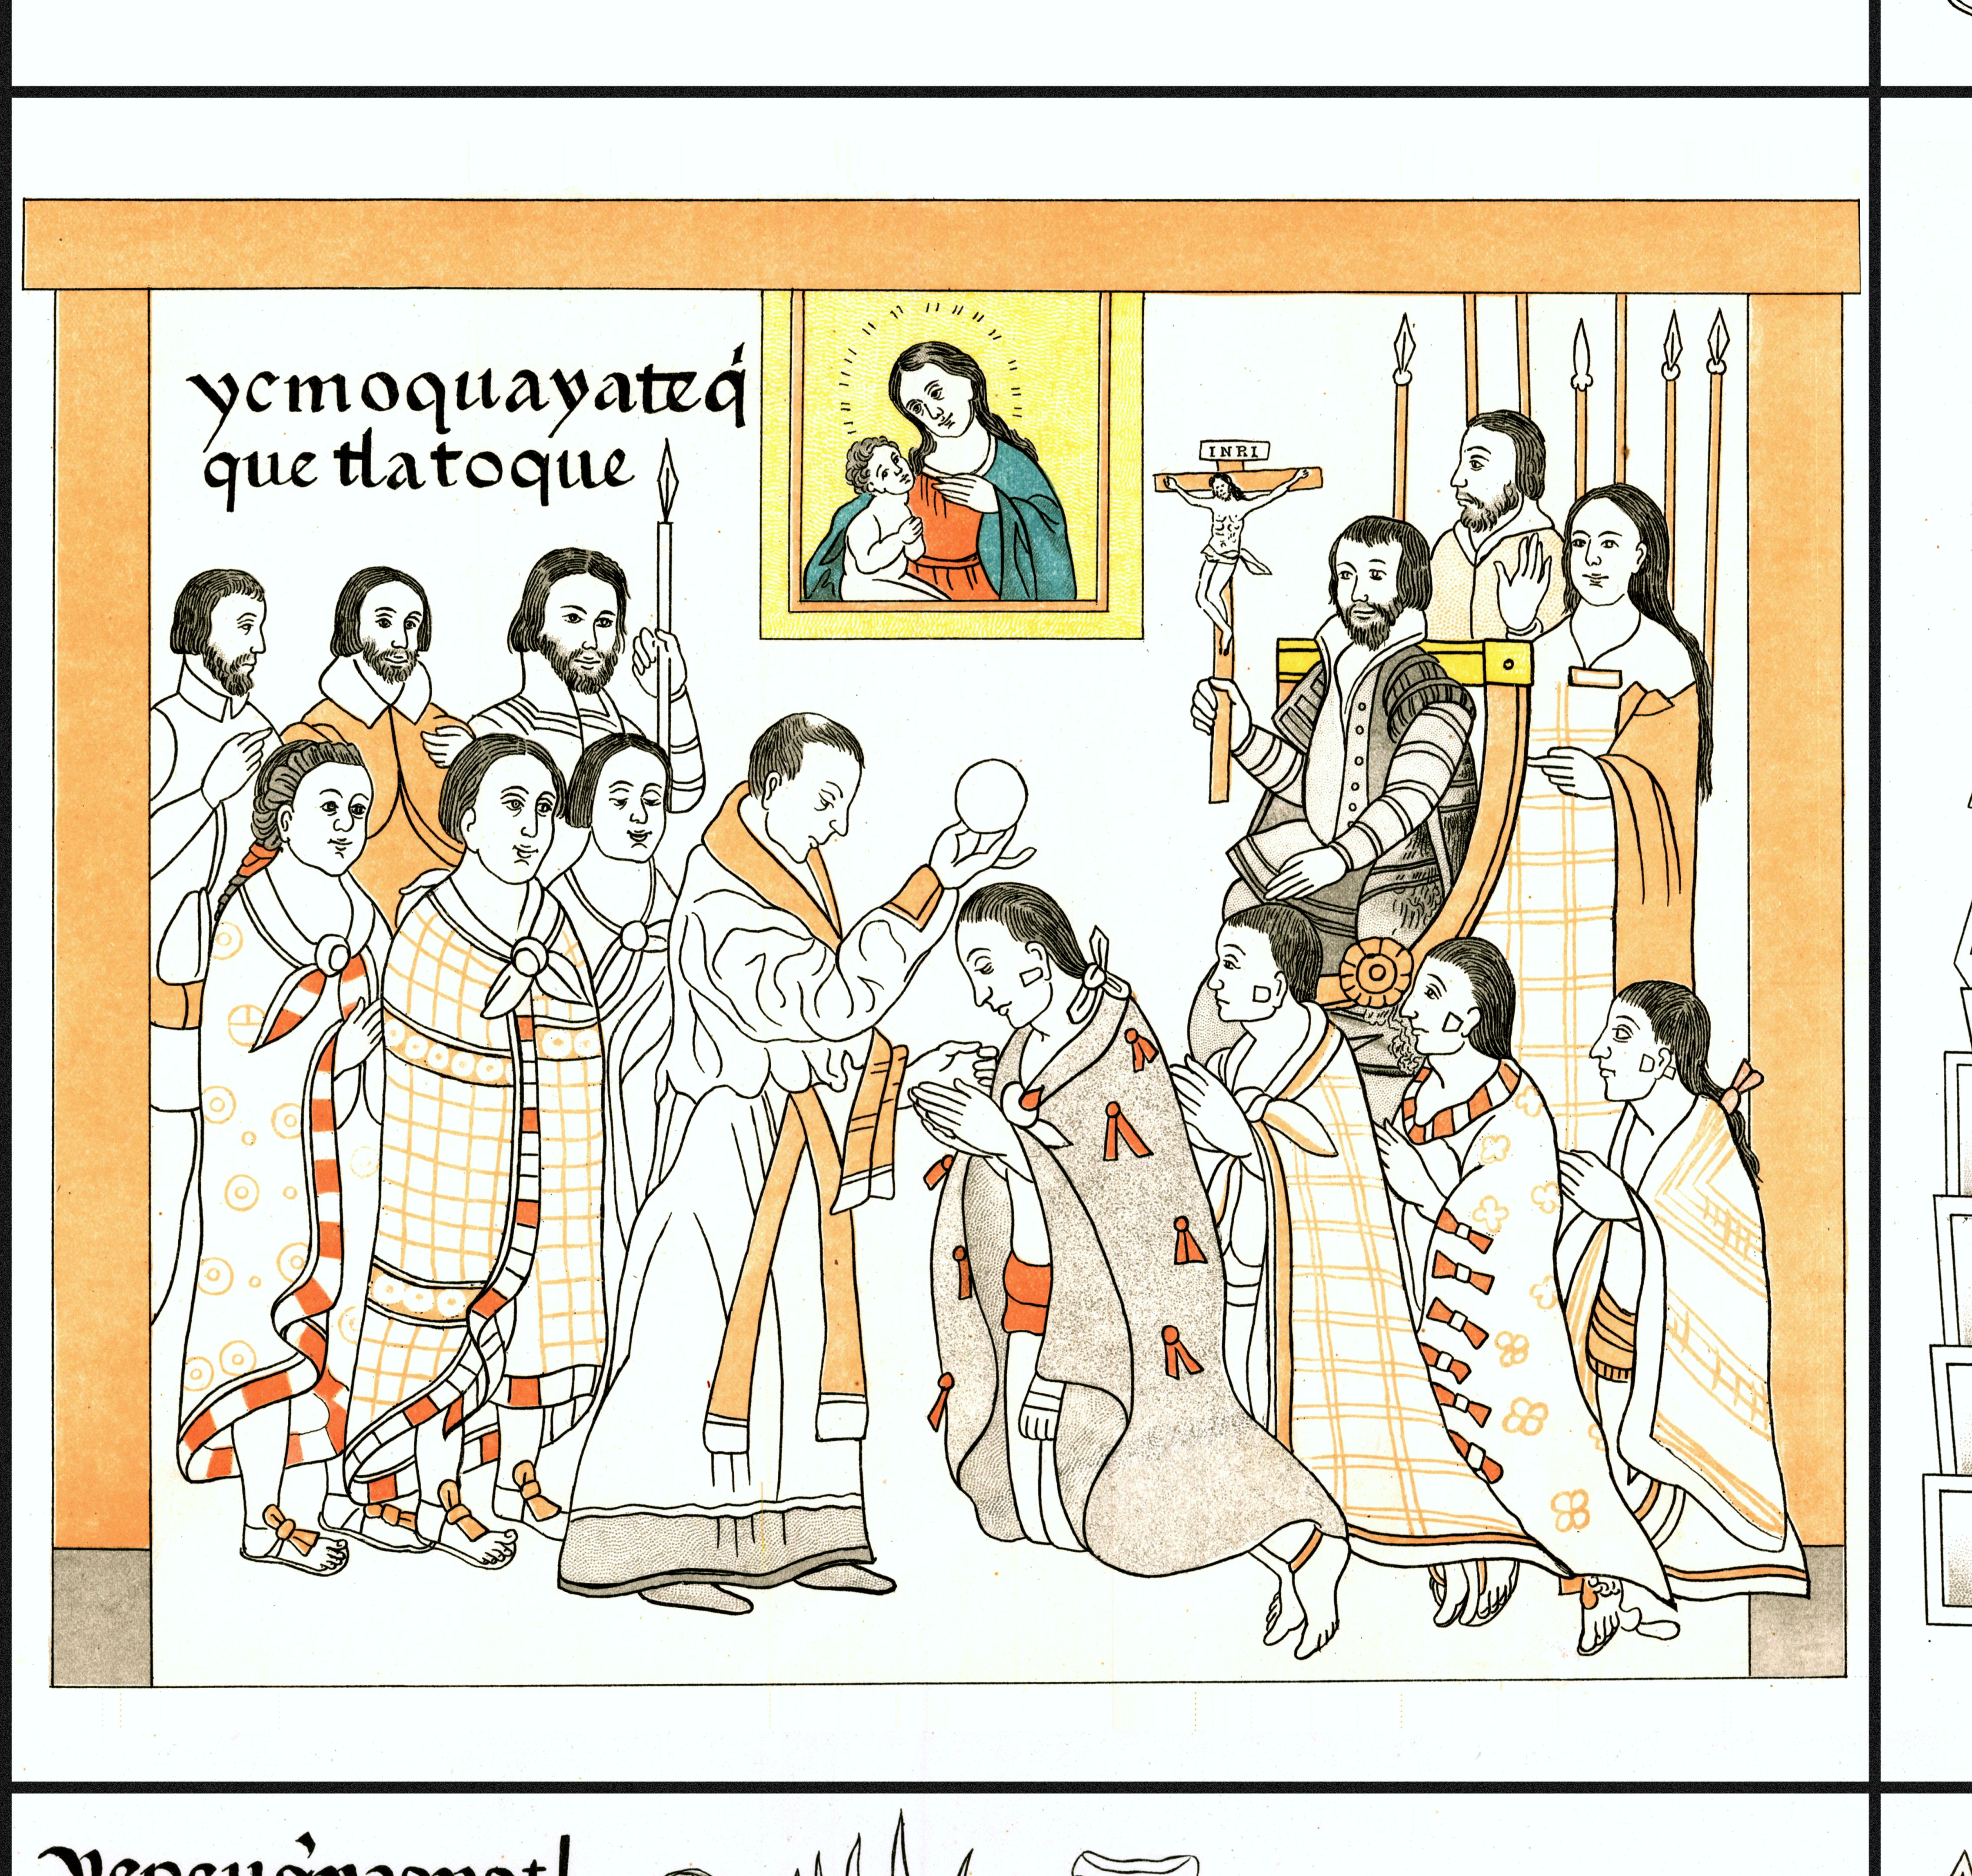 FIGURE 18. Cell 8: The conversion of the Tlaxcalans to Christianity.